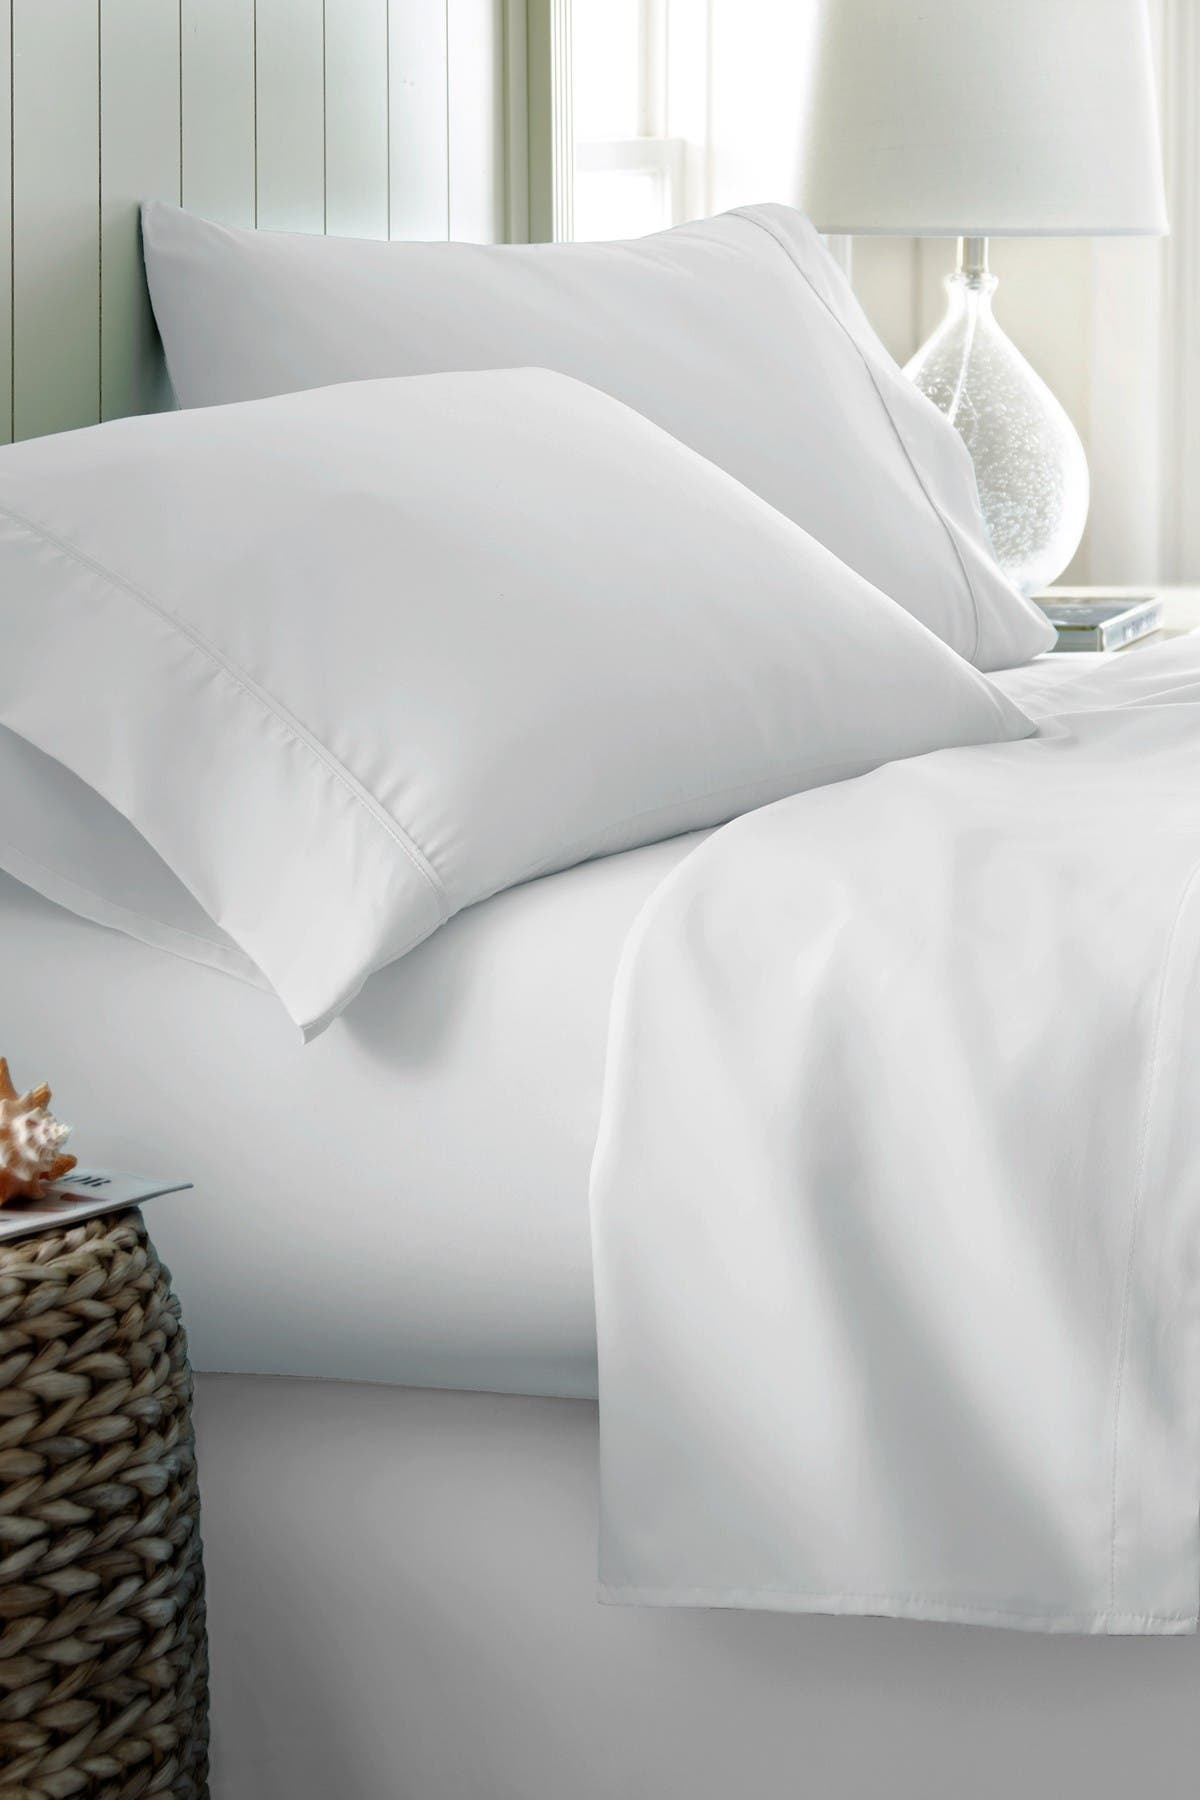 Image of IENJOY HOME Twin Hotel Collection Premium Ultra Soft 3-Piece Bed Sheet Set - White